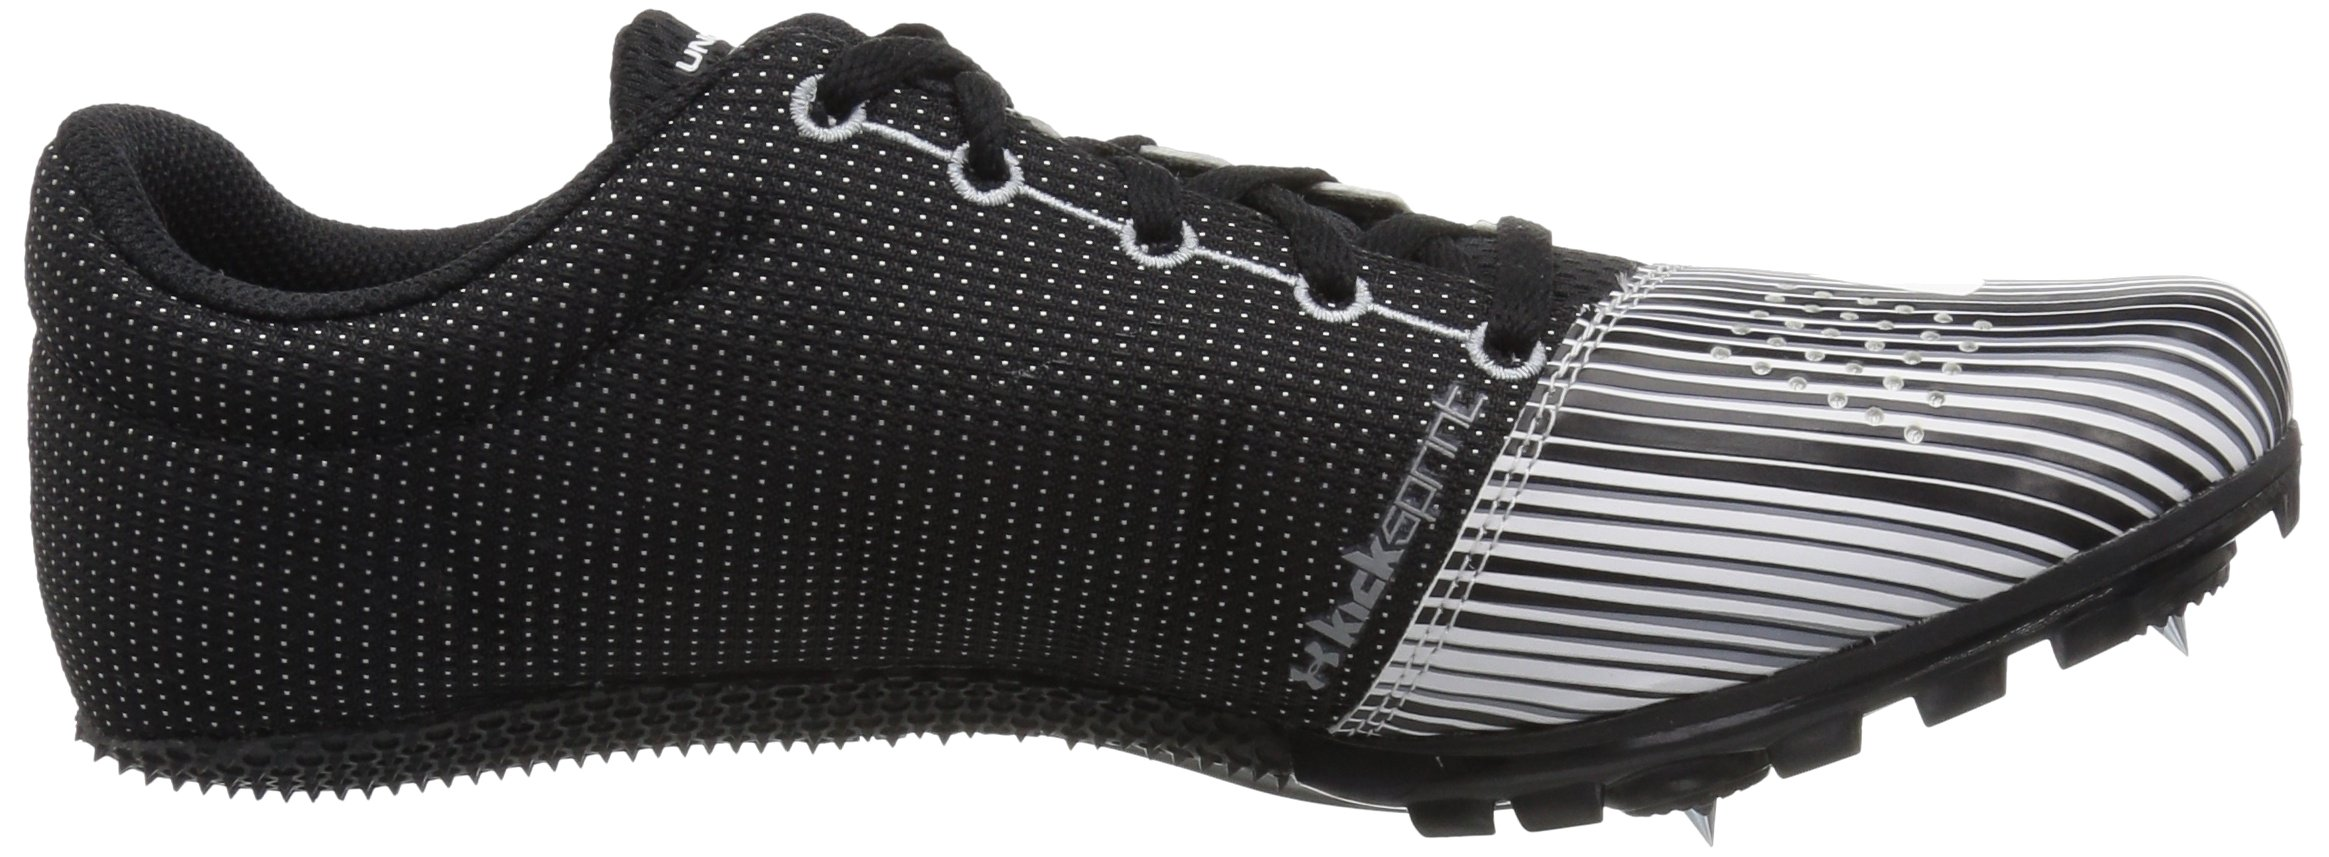 Under Armour Men's Kick Sprint Spike Running Shoe, White (100)/Black, 8 by Under Armour (Image #7)